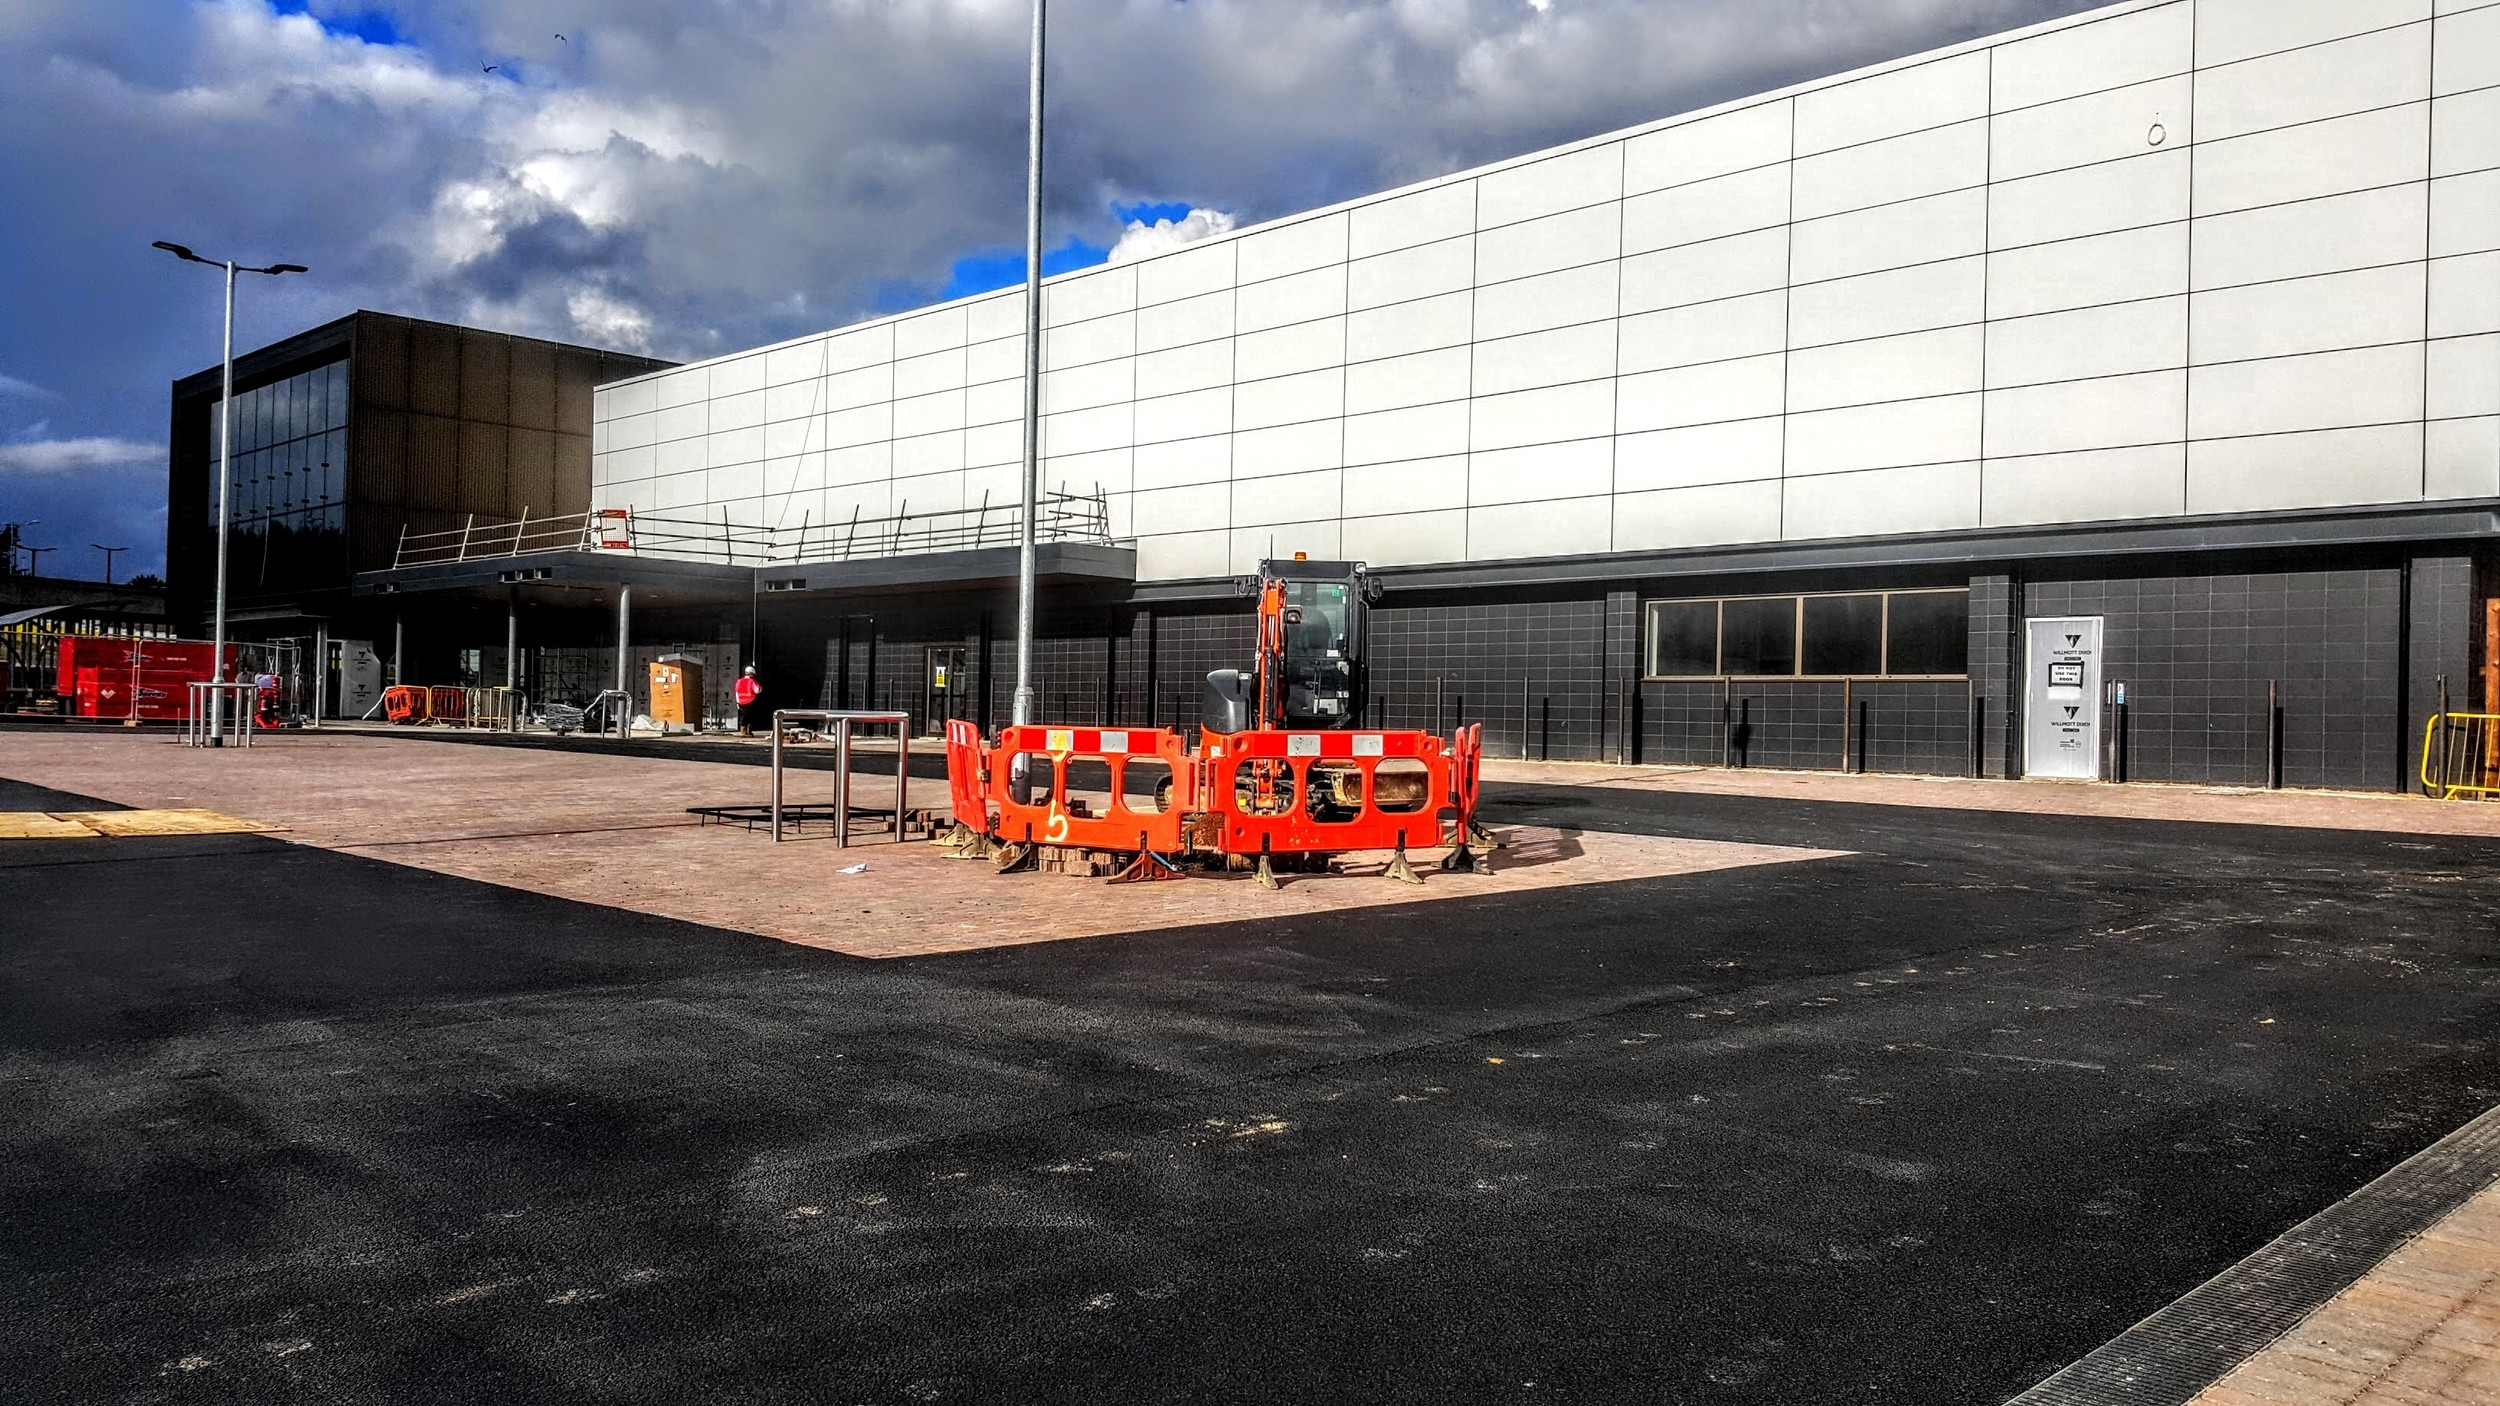 Carpark almost ready for visitors